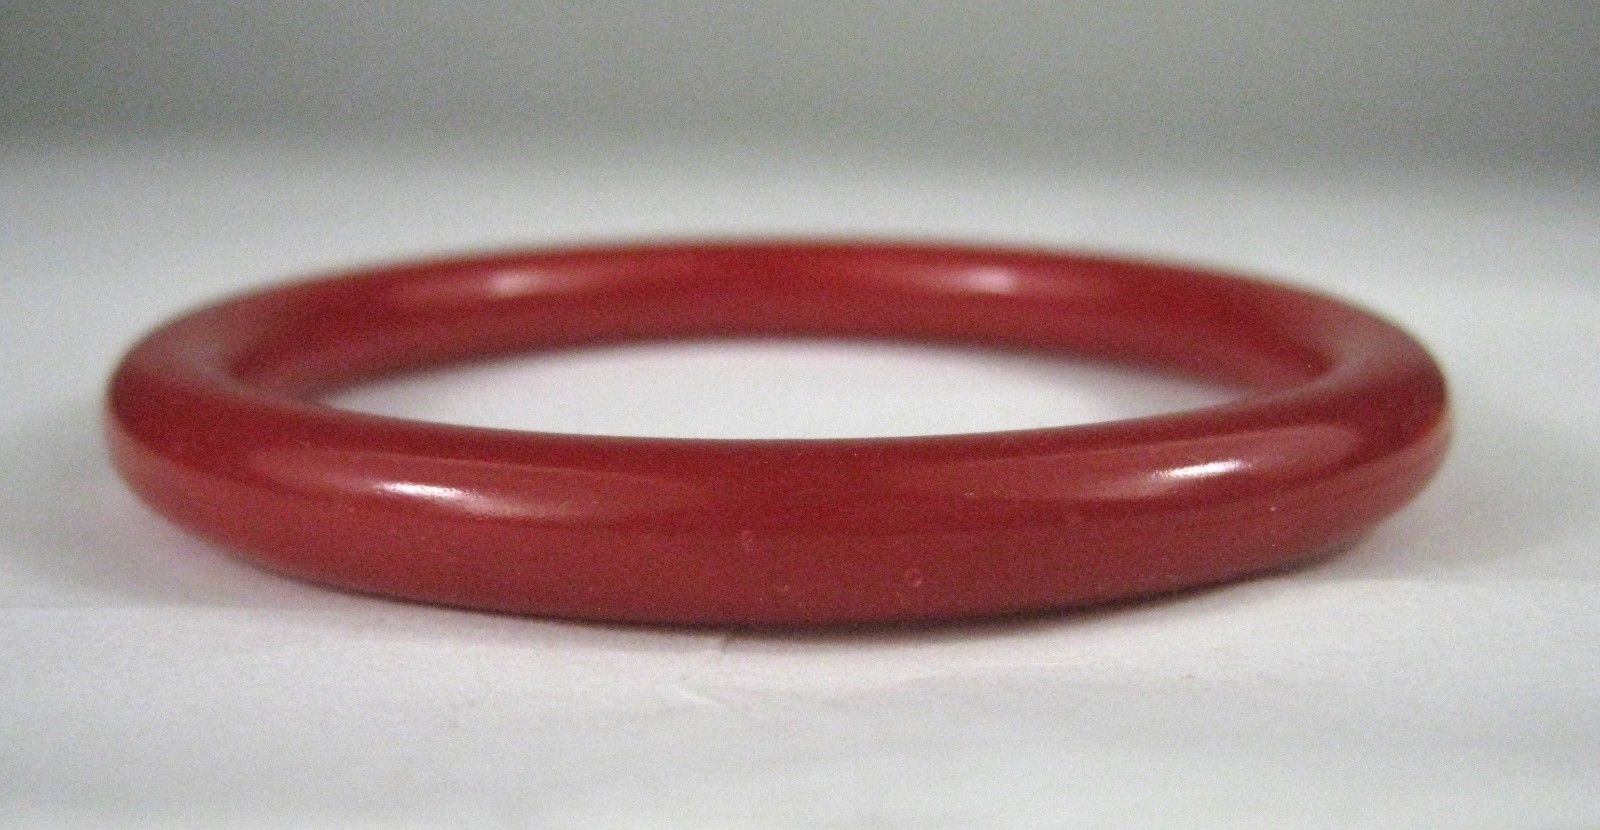 Lucite Women's Bracelet Bangle Red Cherry Spacer Size 3 3/8 Inches VTG image 2